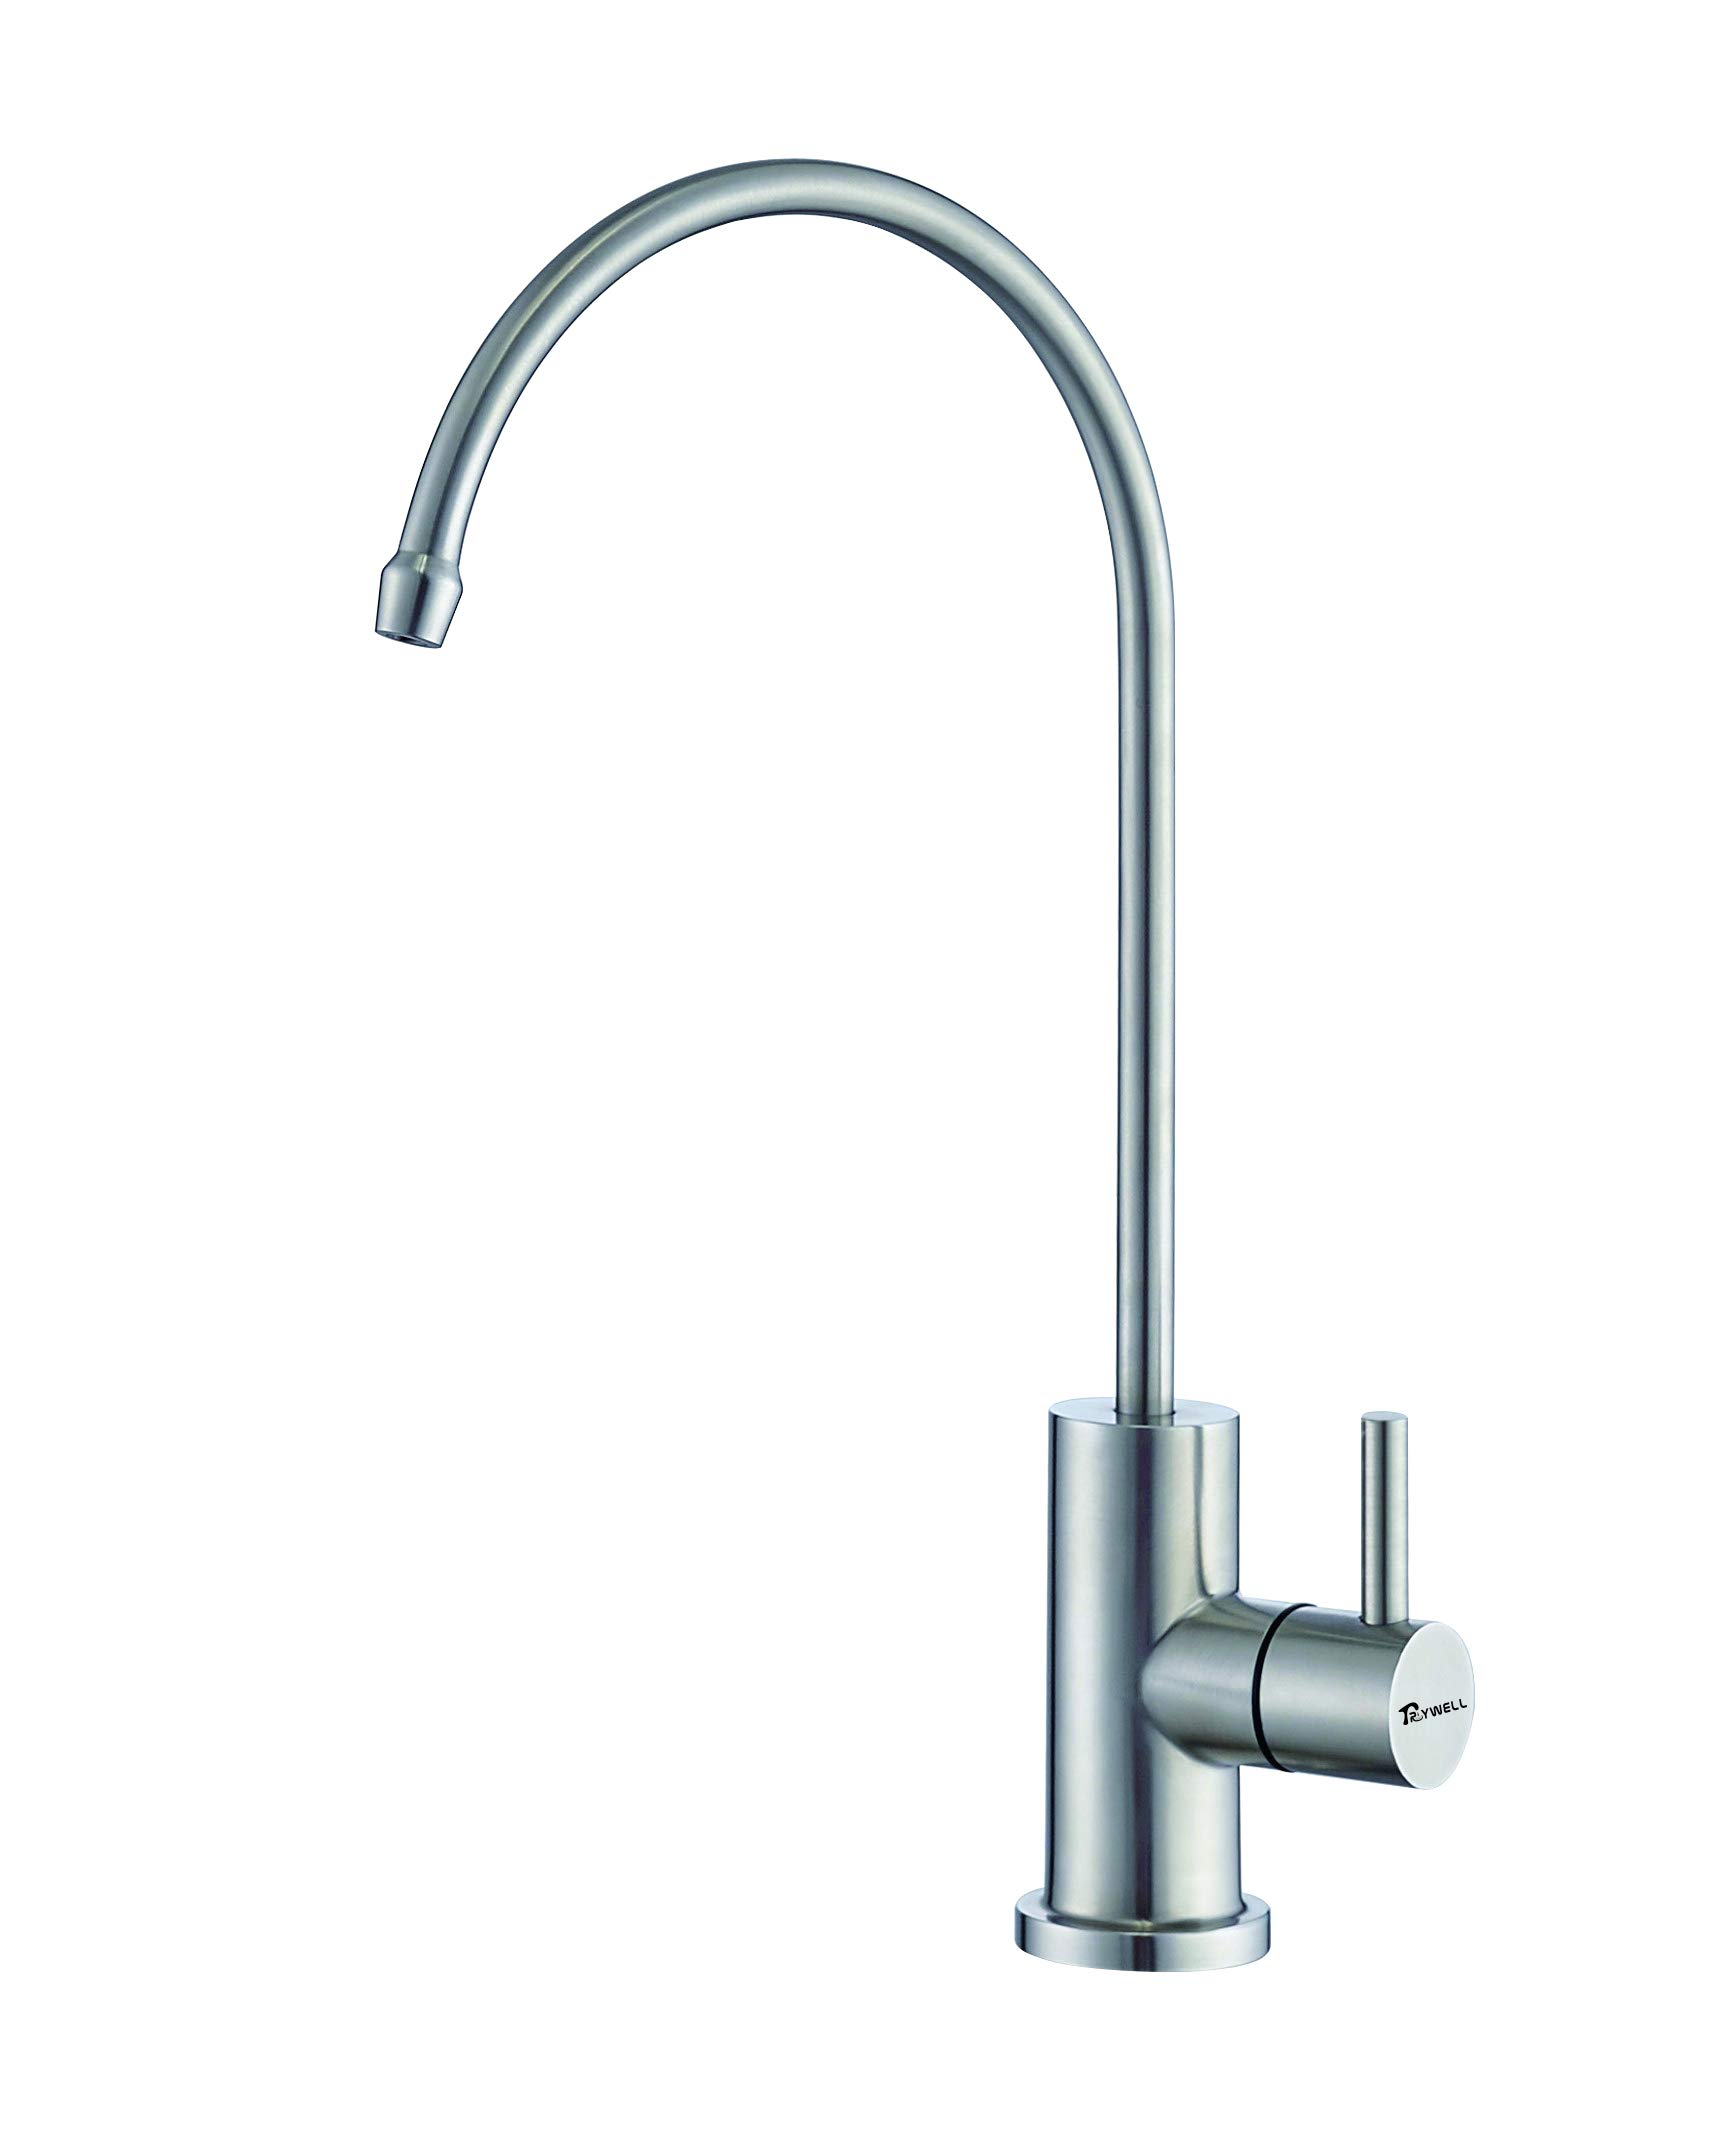 TRYWELL Kitchen Bar Filter Faucet, Lead-Free Drinking Water Beverage Faucet for Reverse Osmosis and Water Filtration System in Non-Air Gap, 100% T304 Stainless Steel by TRYWELL